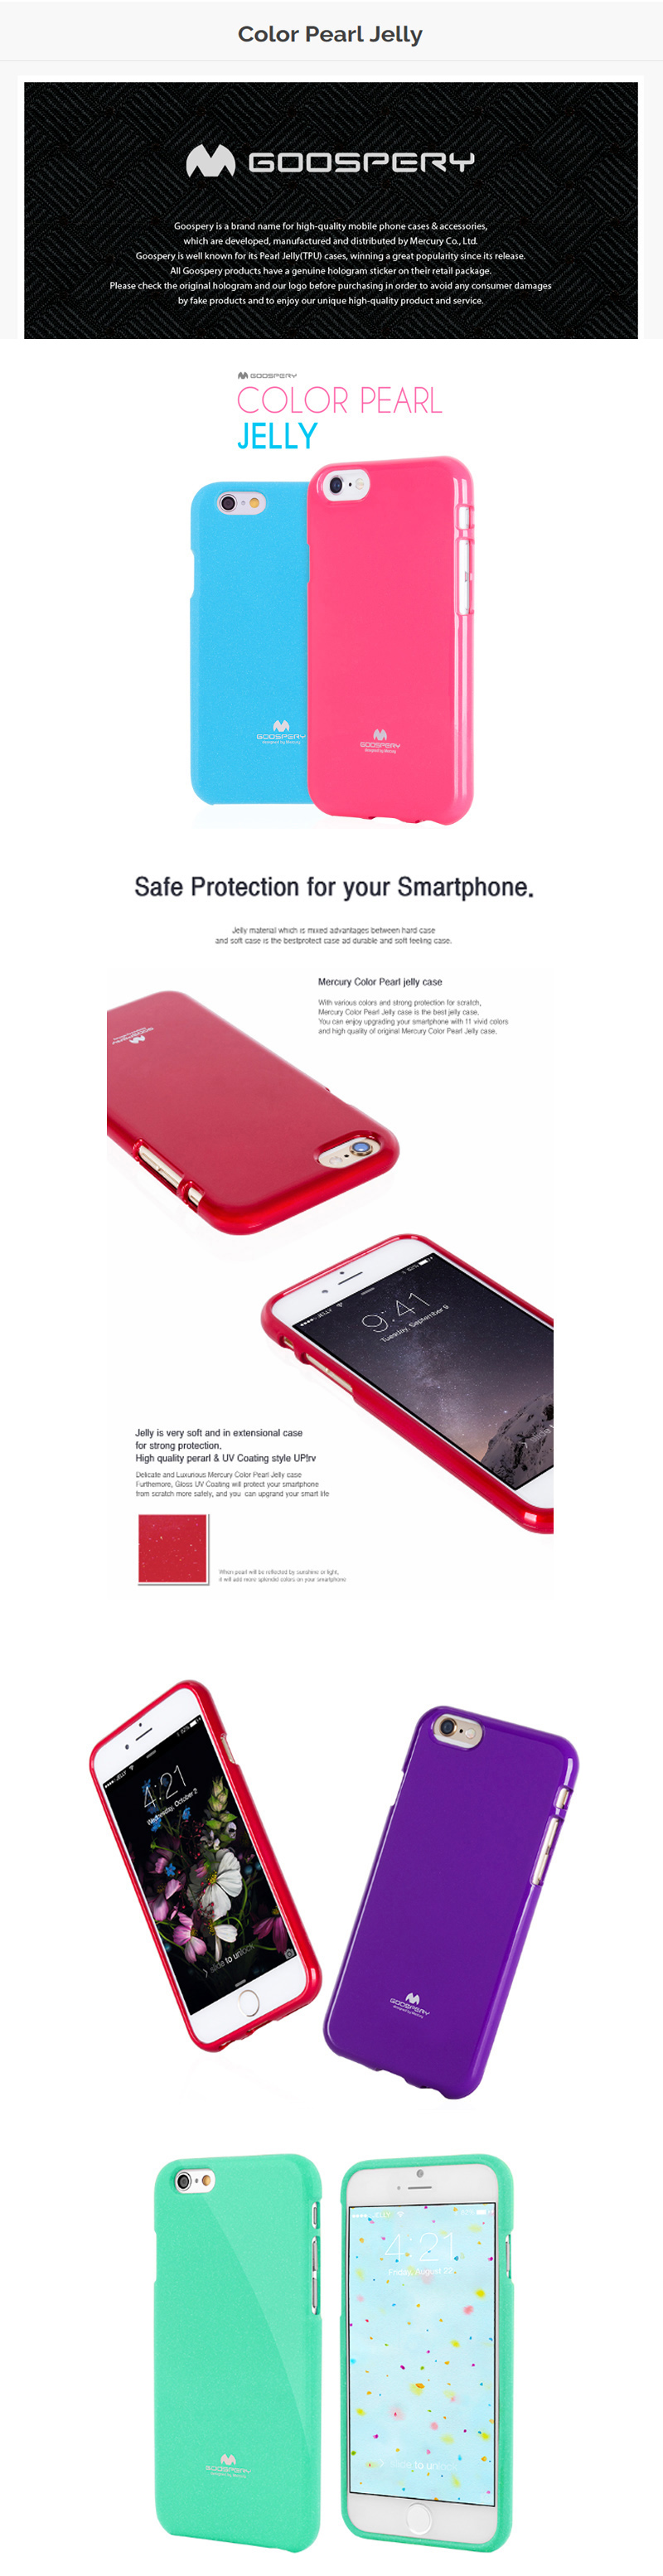 Buy Gadgetor Sg Sellercases For Samsung Deals Only S25 Goospery Note 9 N960 Pearl Jelly Case I 2pcs Tempered Glass